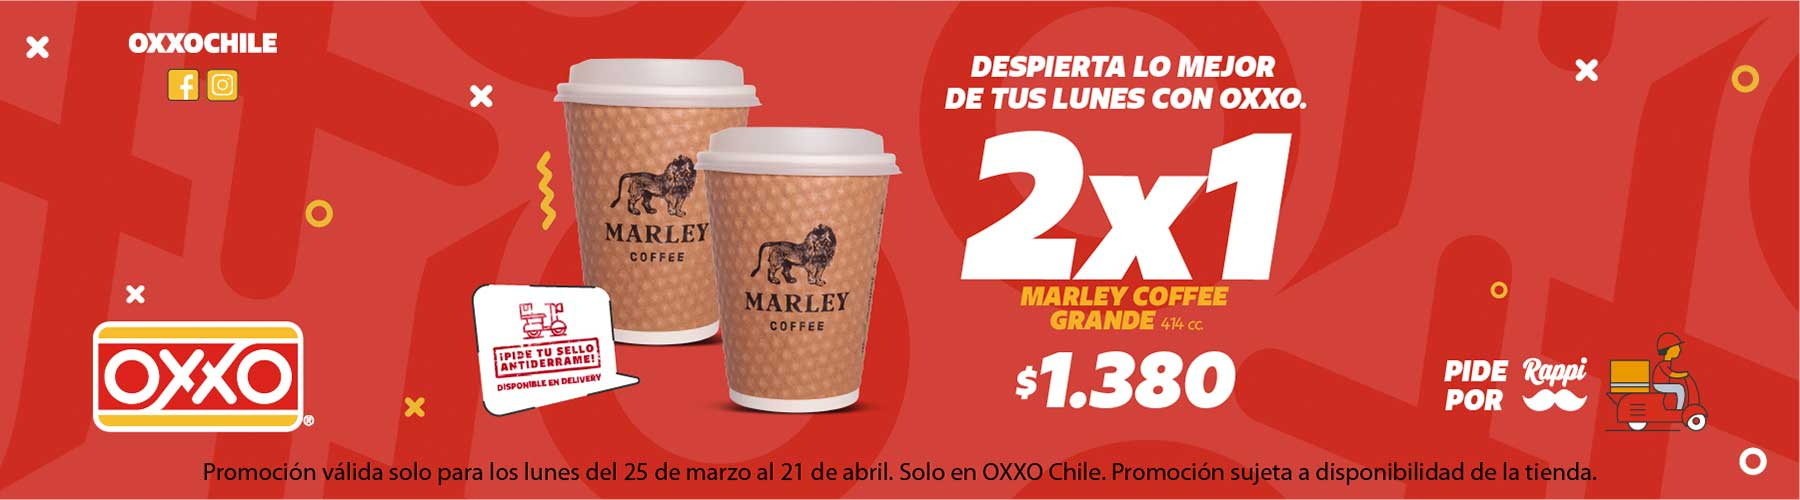 OXXO Chile Home Banner 3 P4 2021